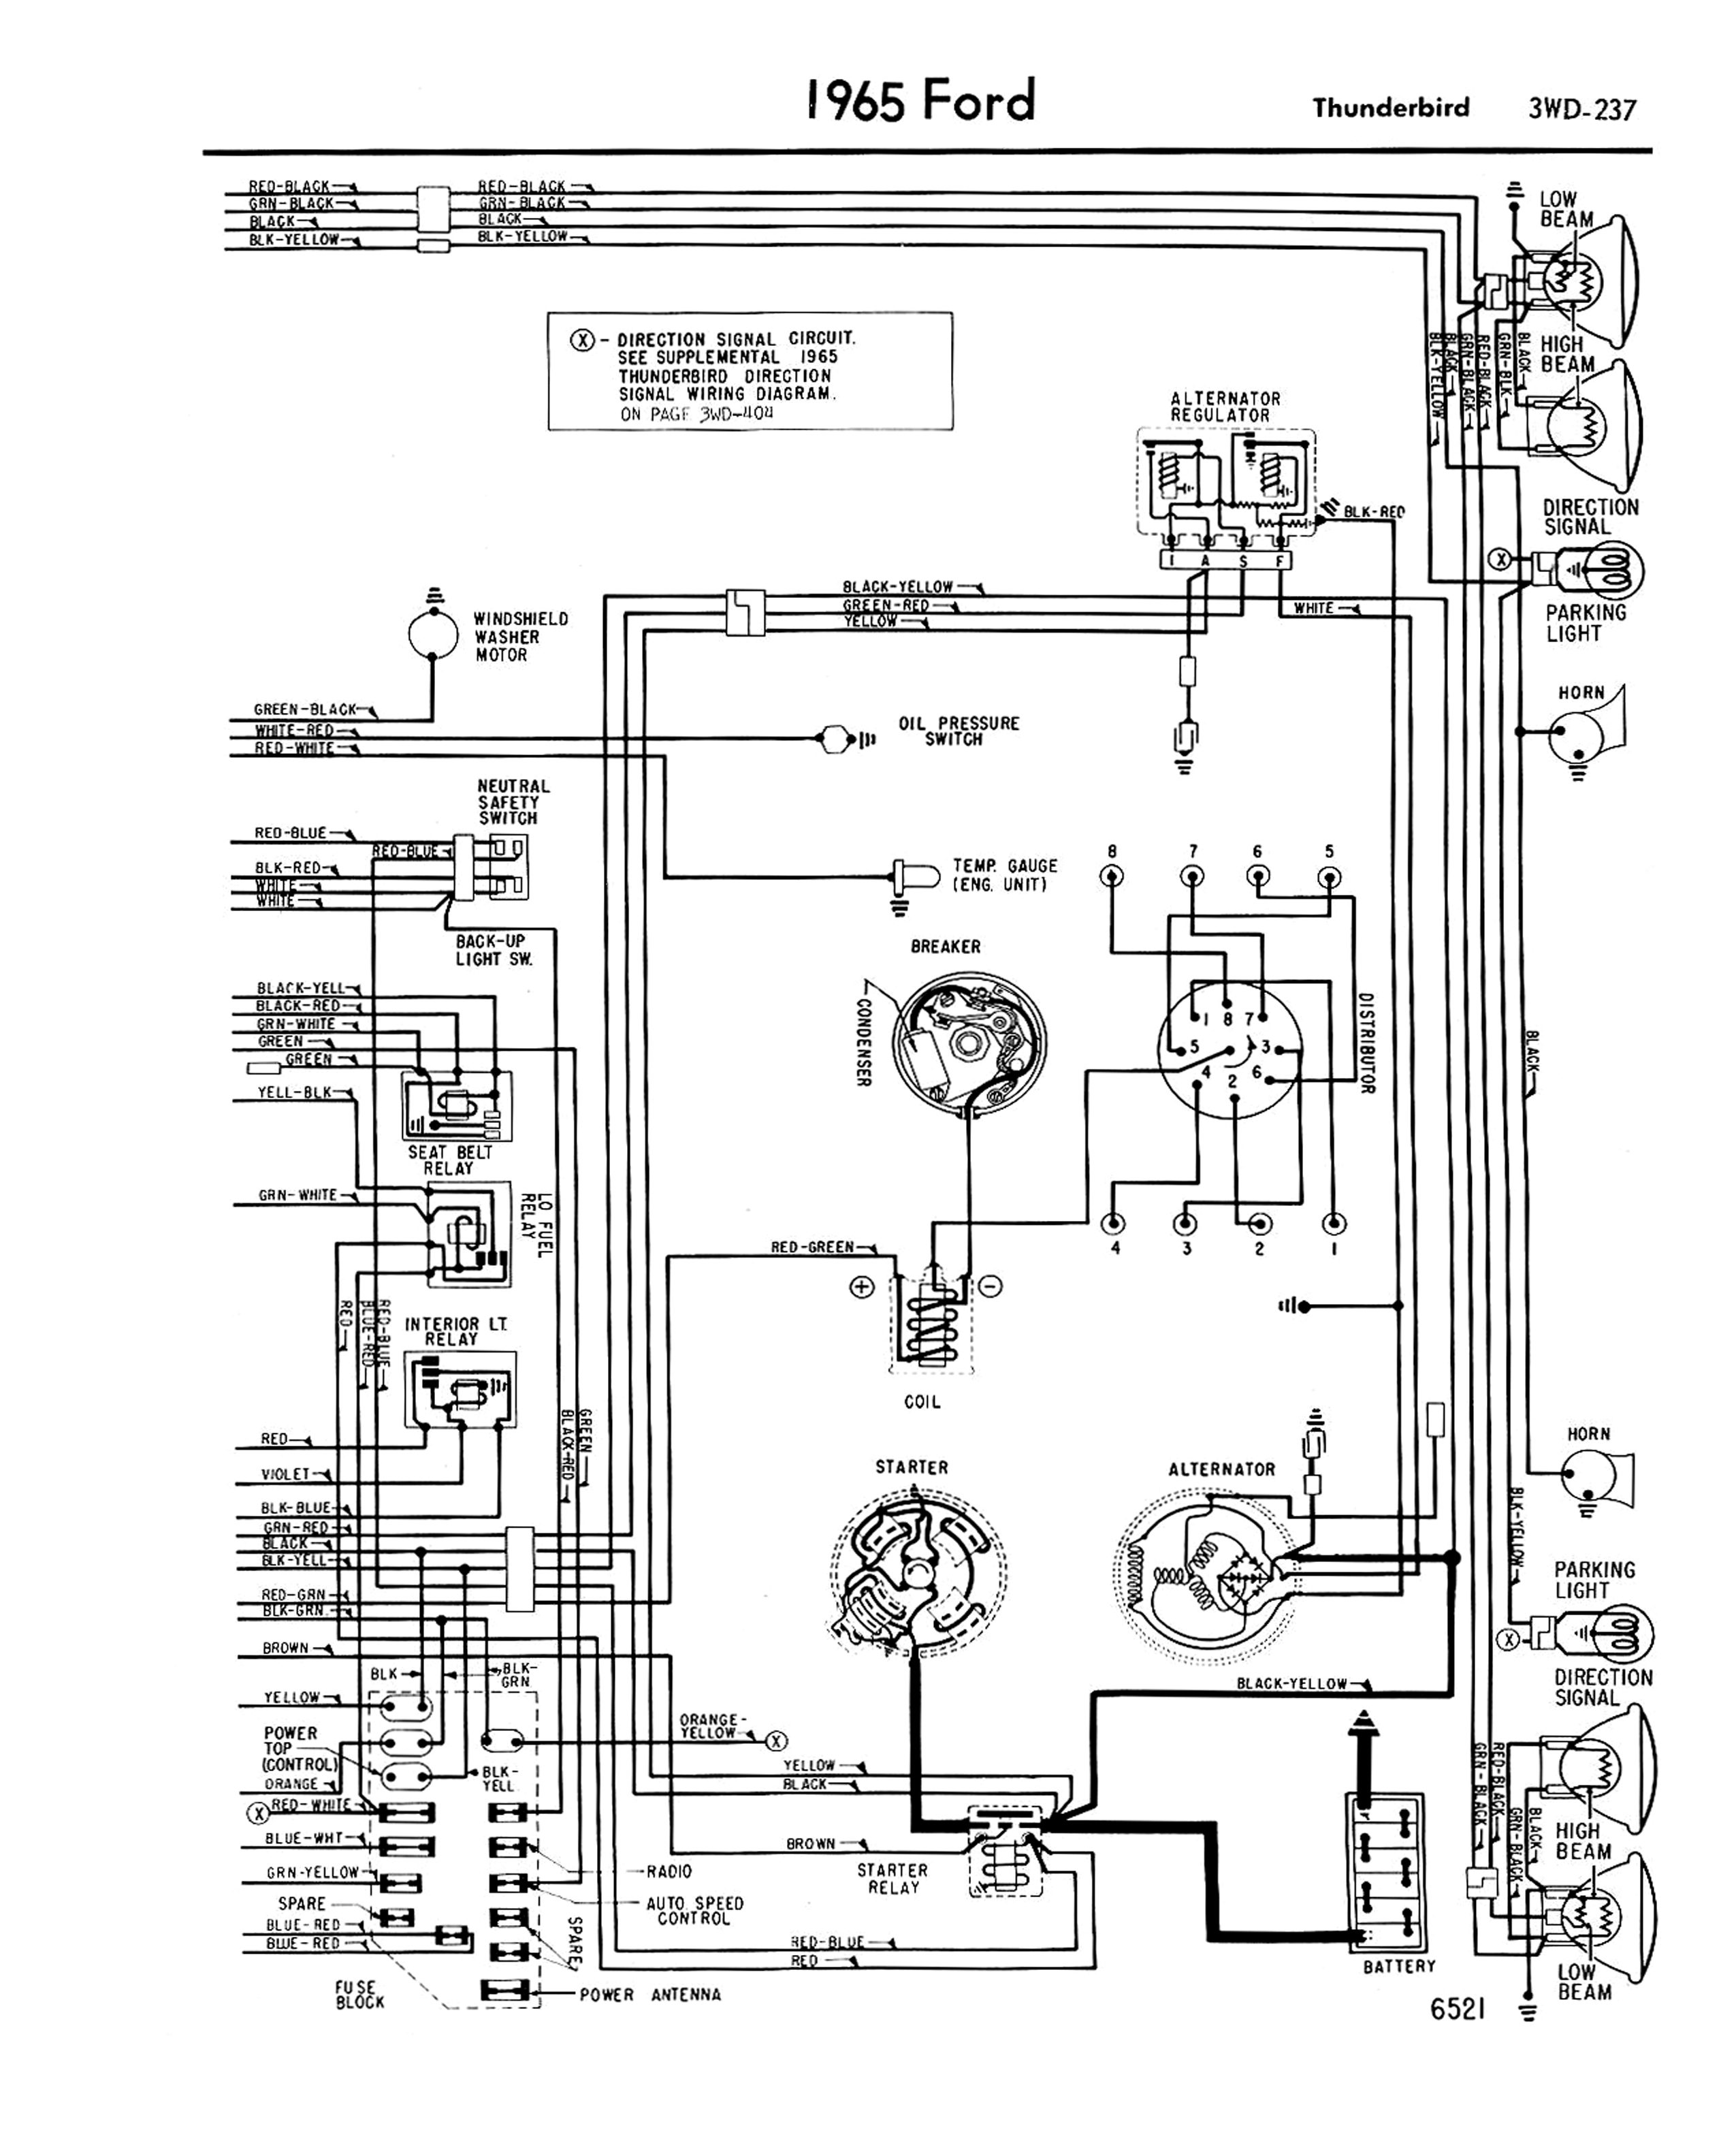 65 Mustang Wiring Diagram For Tail Lights Library 1965 Chevrolet 16